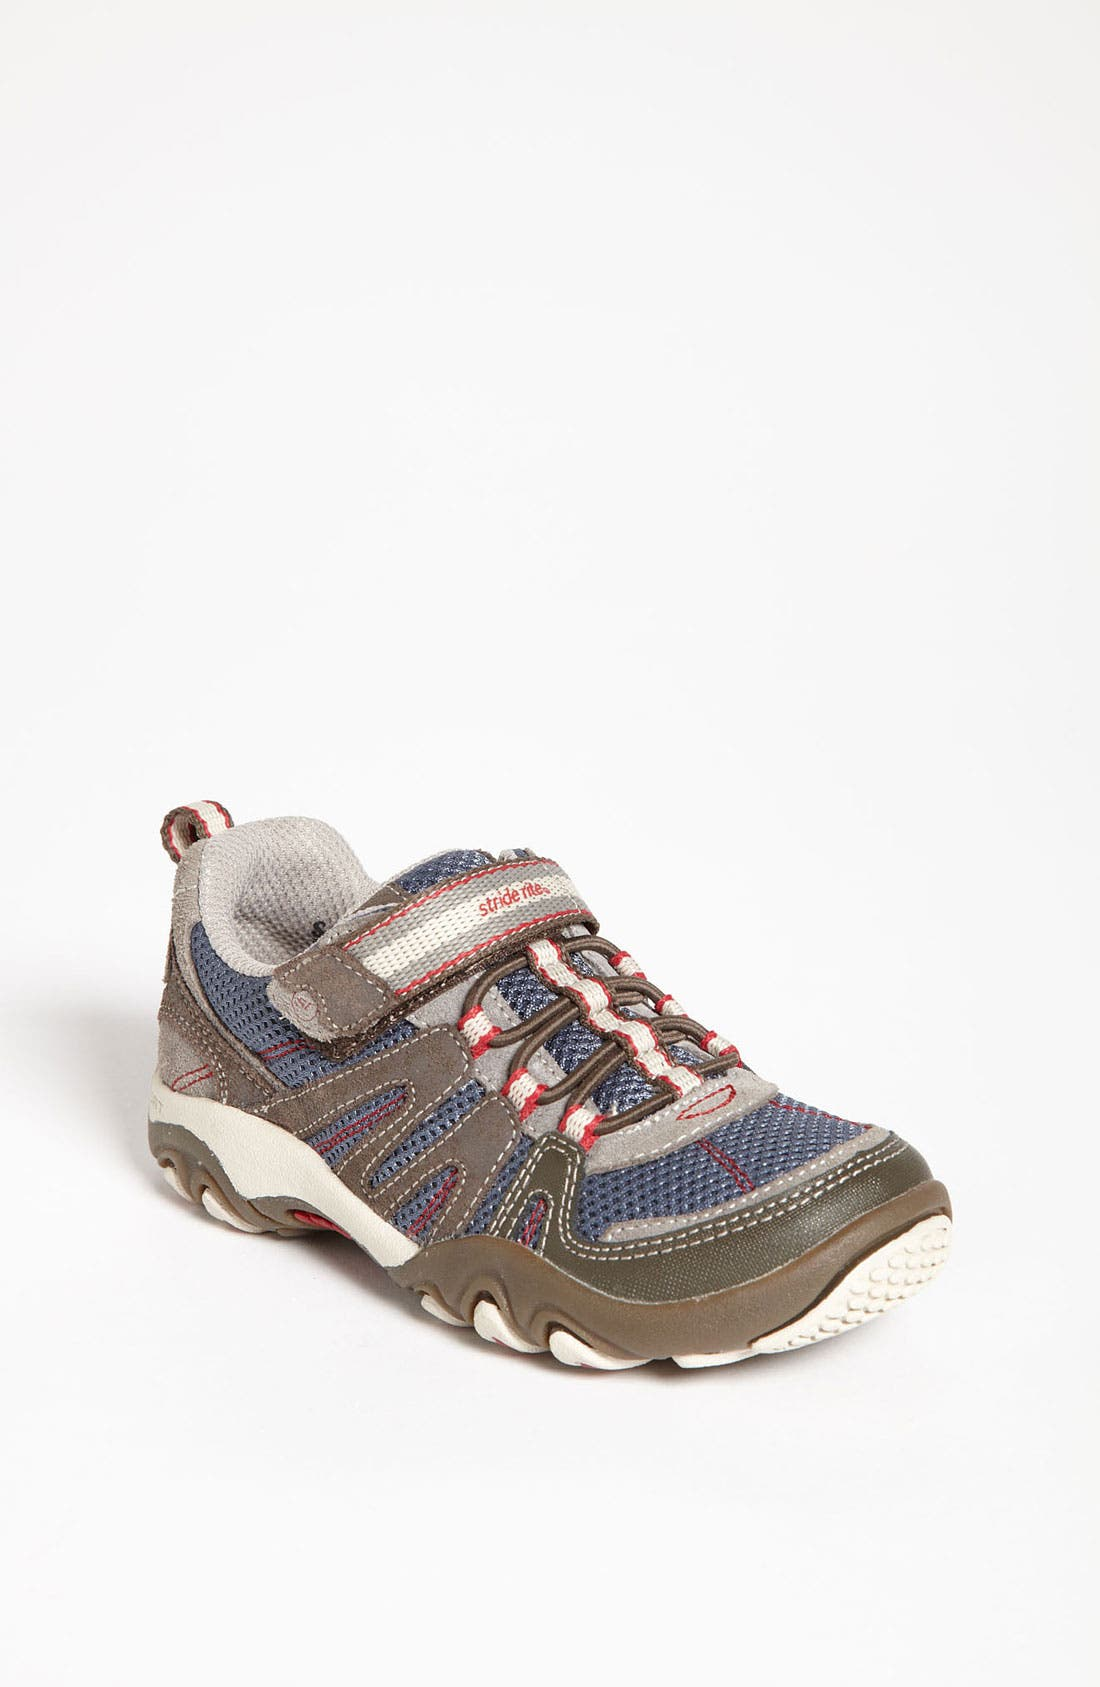 Alternate Image 1 Selected - Stride Rite 'Palmer' Sneaker (Toddler & Little Kid)